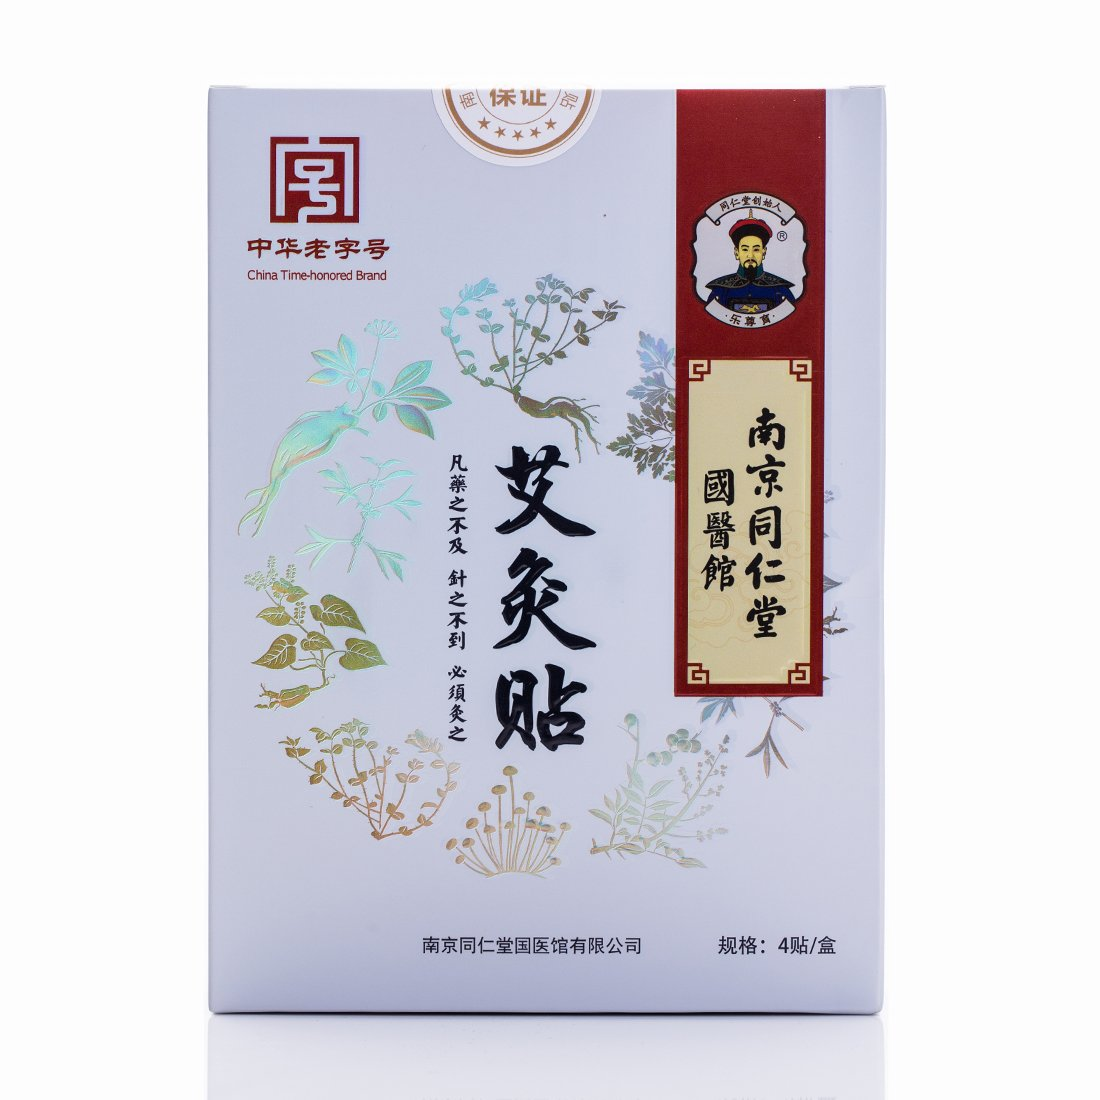 Tong Ren Tang Natural Moxibustion Patch - Heating Pads Pain Relief Patches for Joints/Neck/Shoulders/Back/Legs - 4 Patches/Box(Pack of 3)